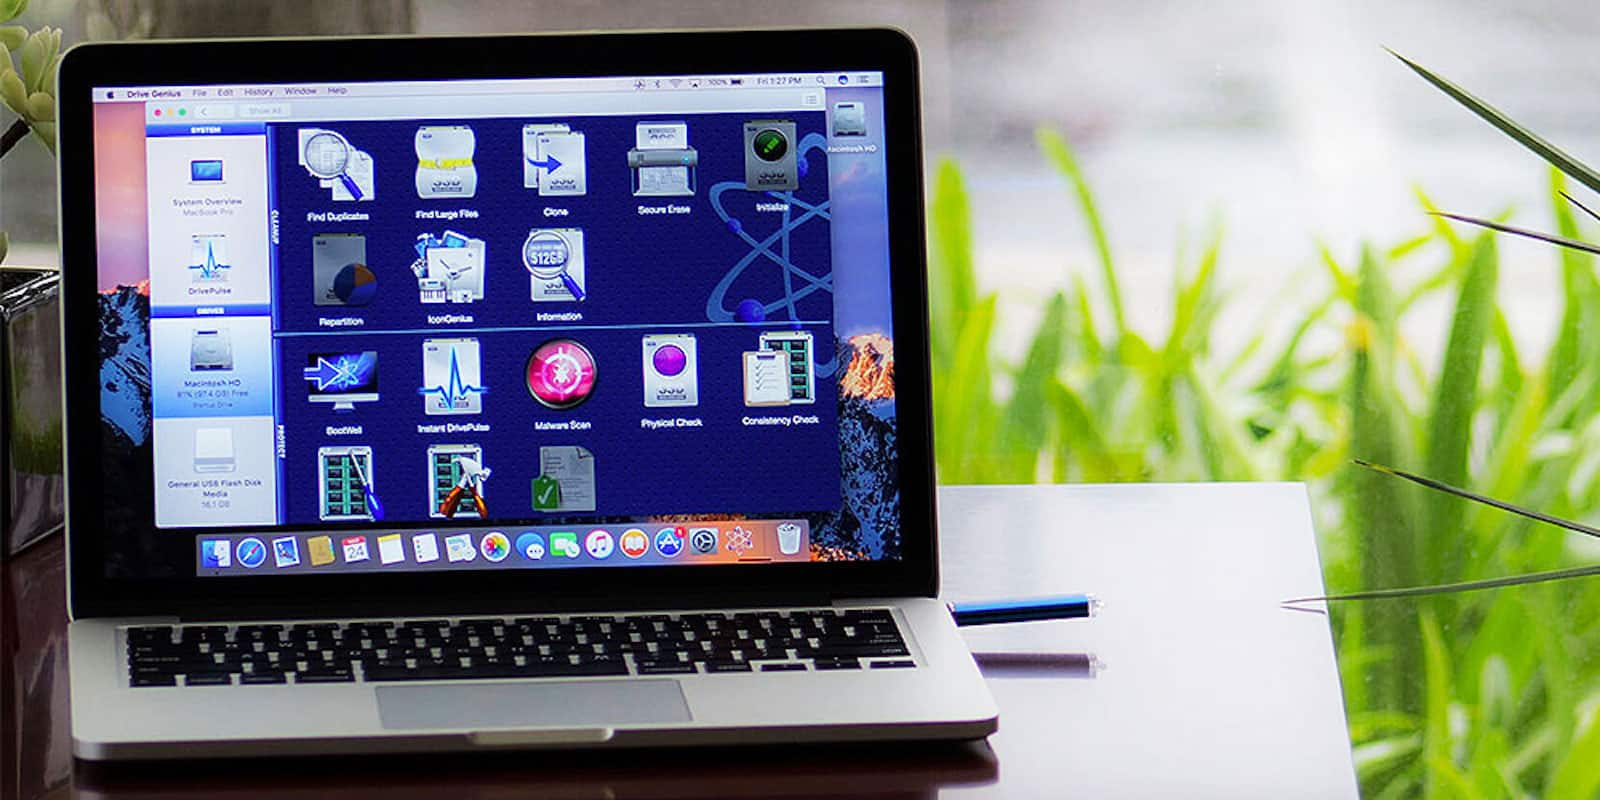 This app is packed with tools to keep your Mac drive clean and healthy.